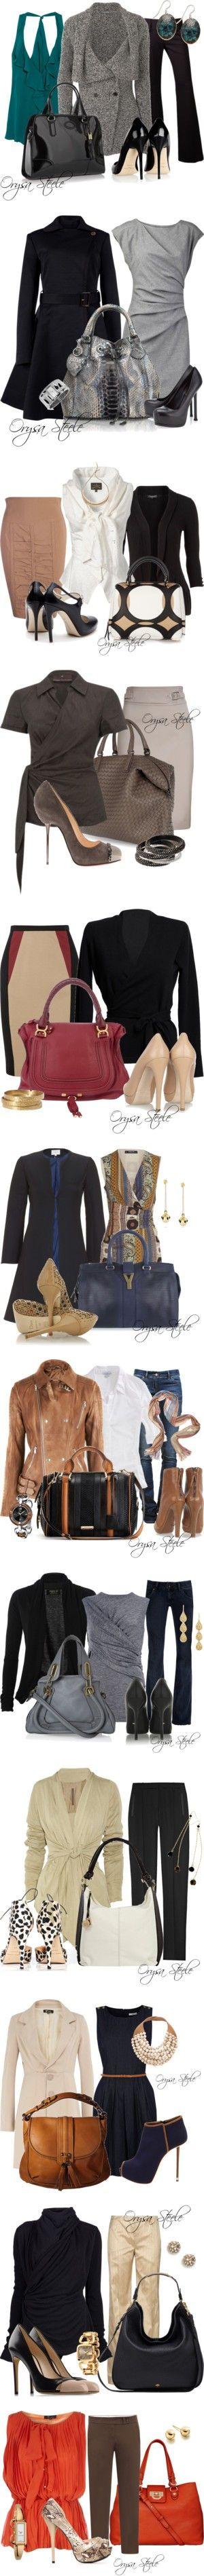 in style @ work - Click image to find more Women's Fashion Pinterest pins